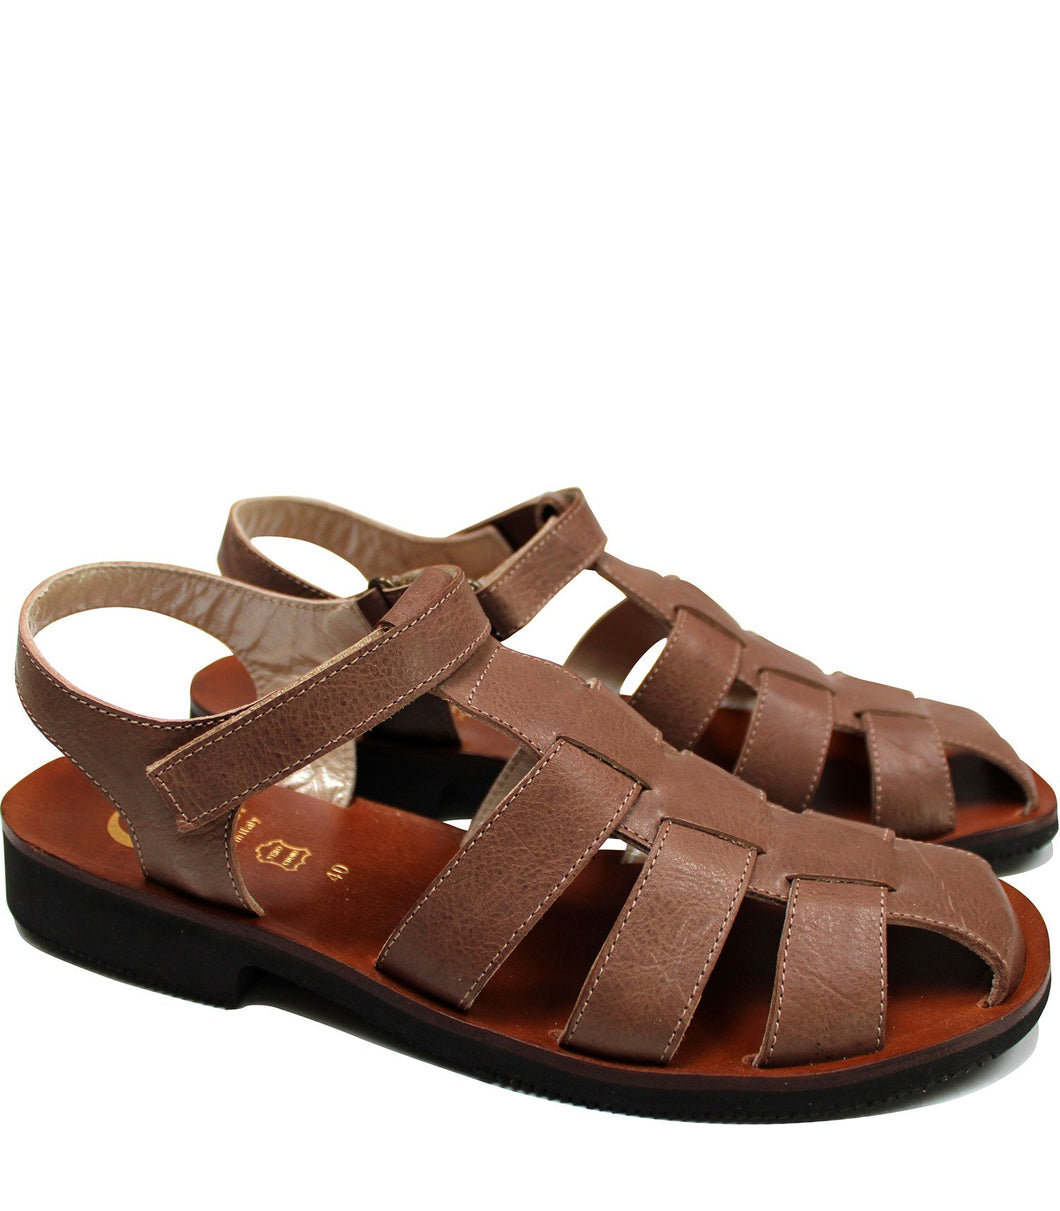 Straps sandals in brown leather